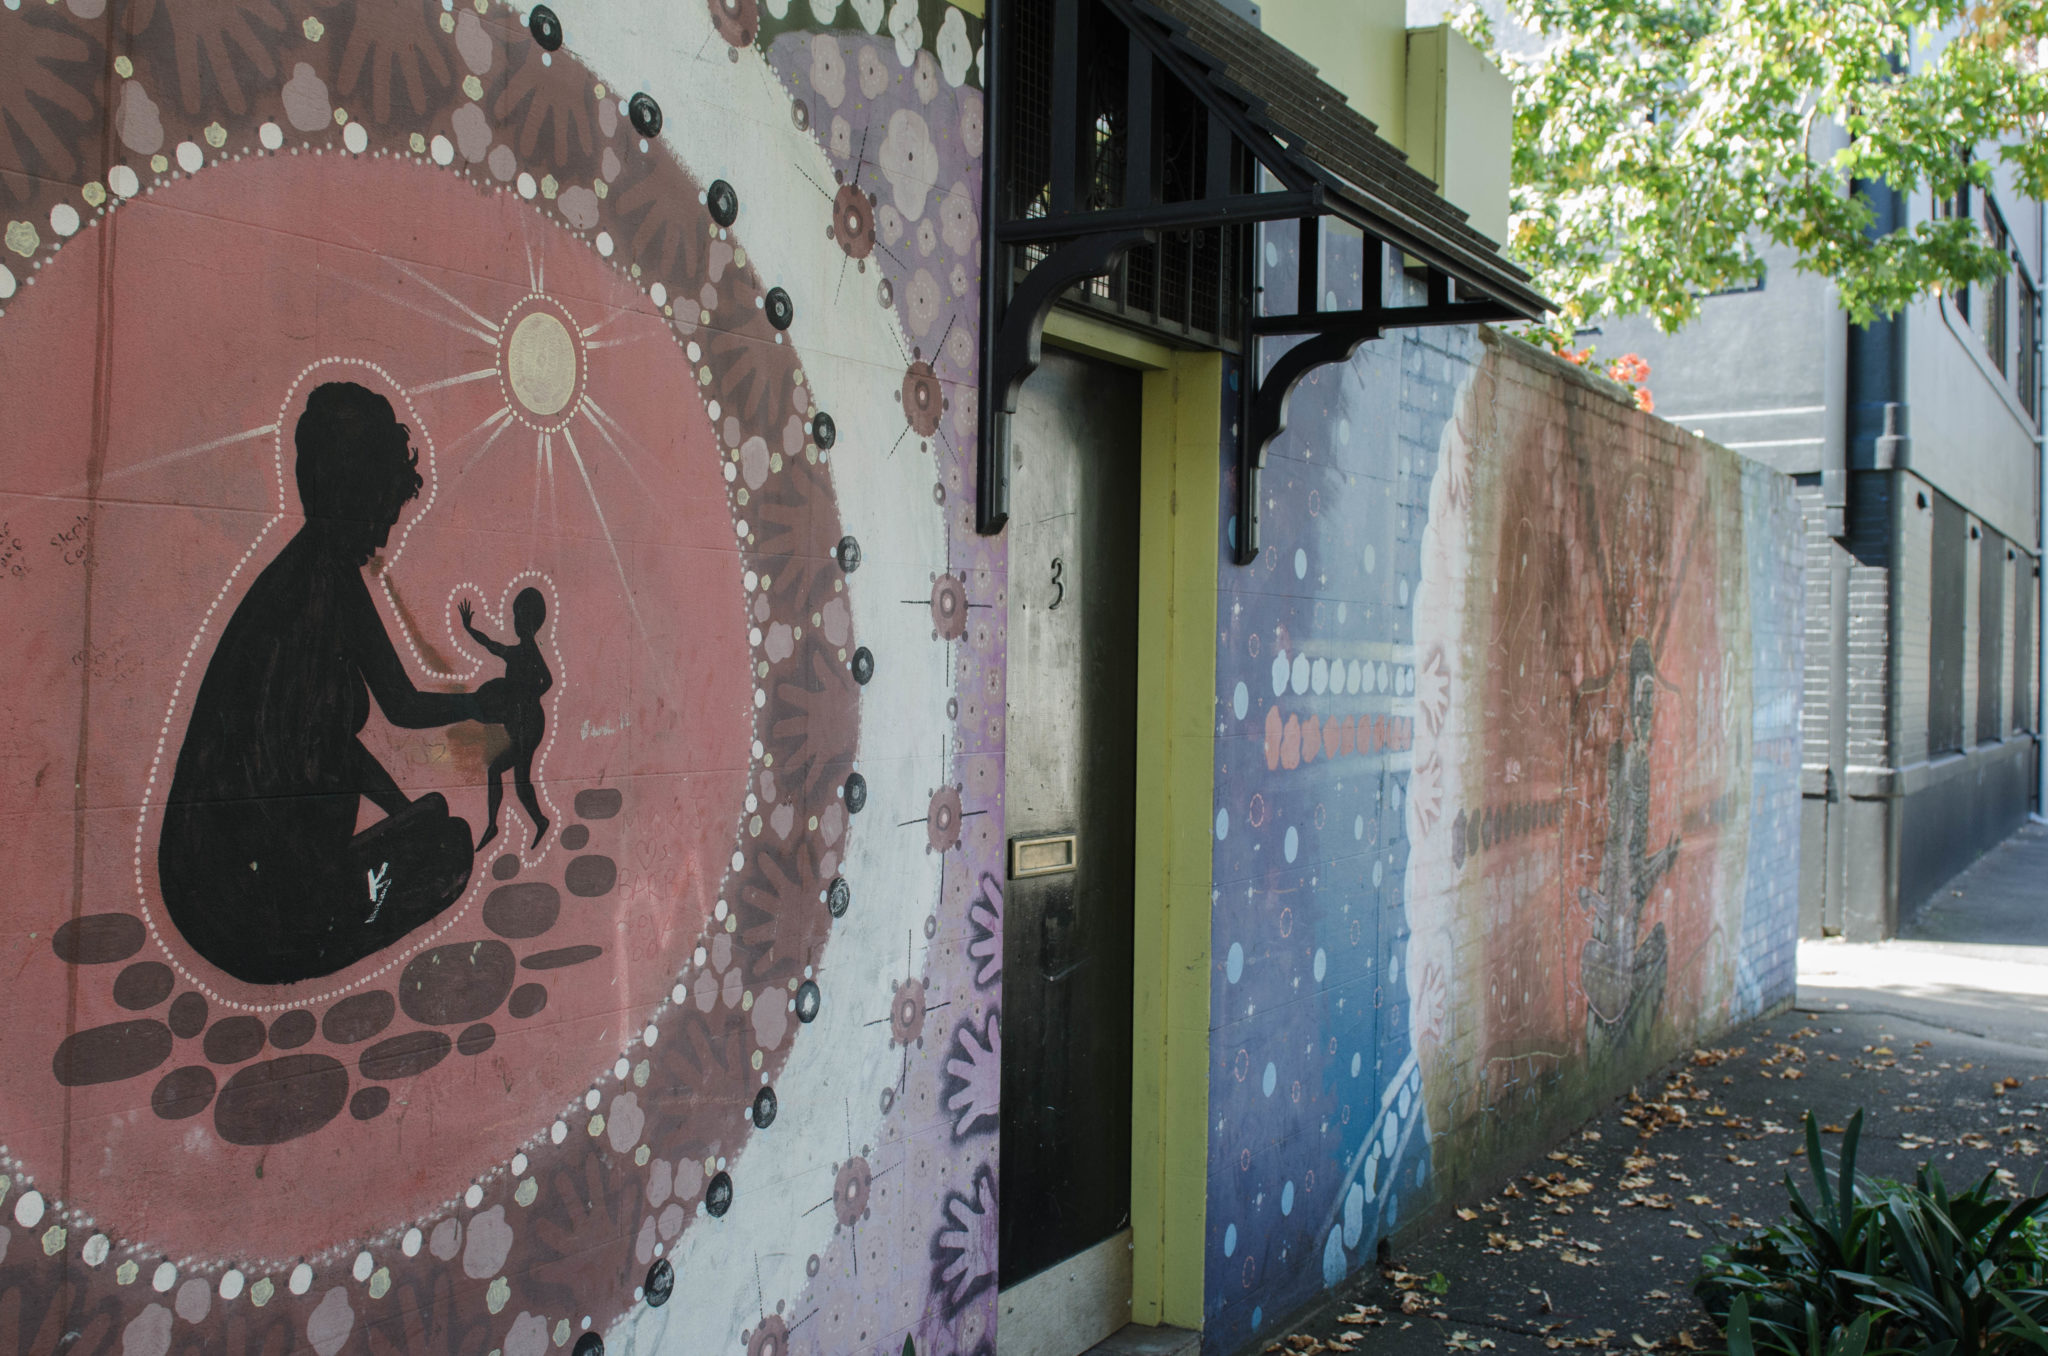 Redfern Sydney: Traces of Redfern's Aboriginal history can still be found.